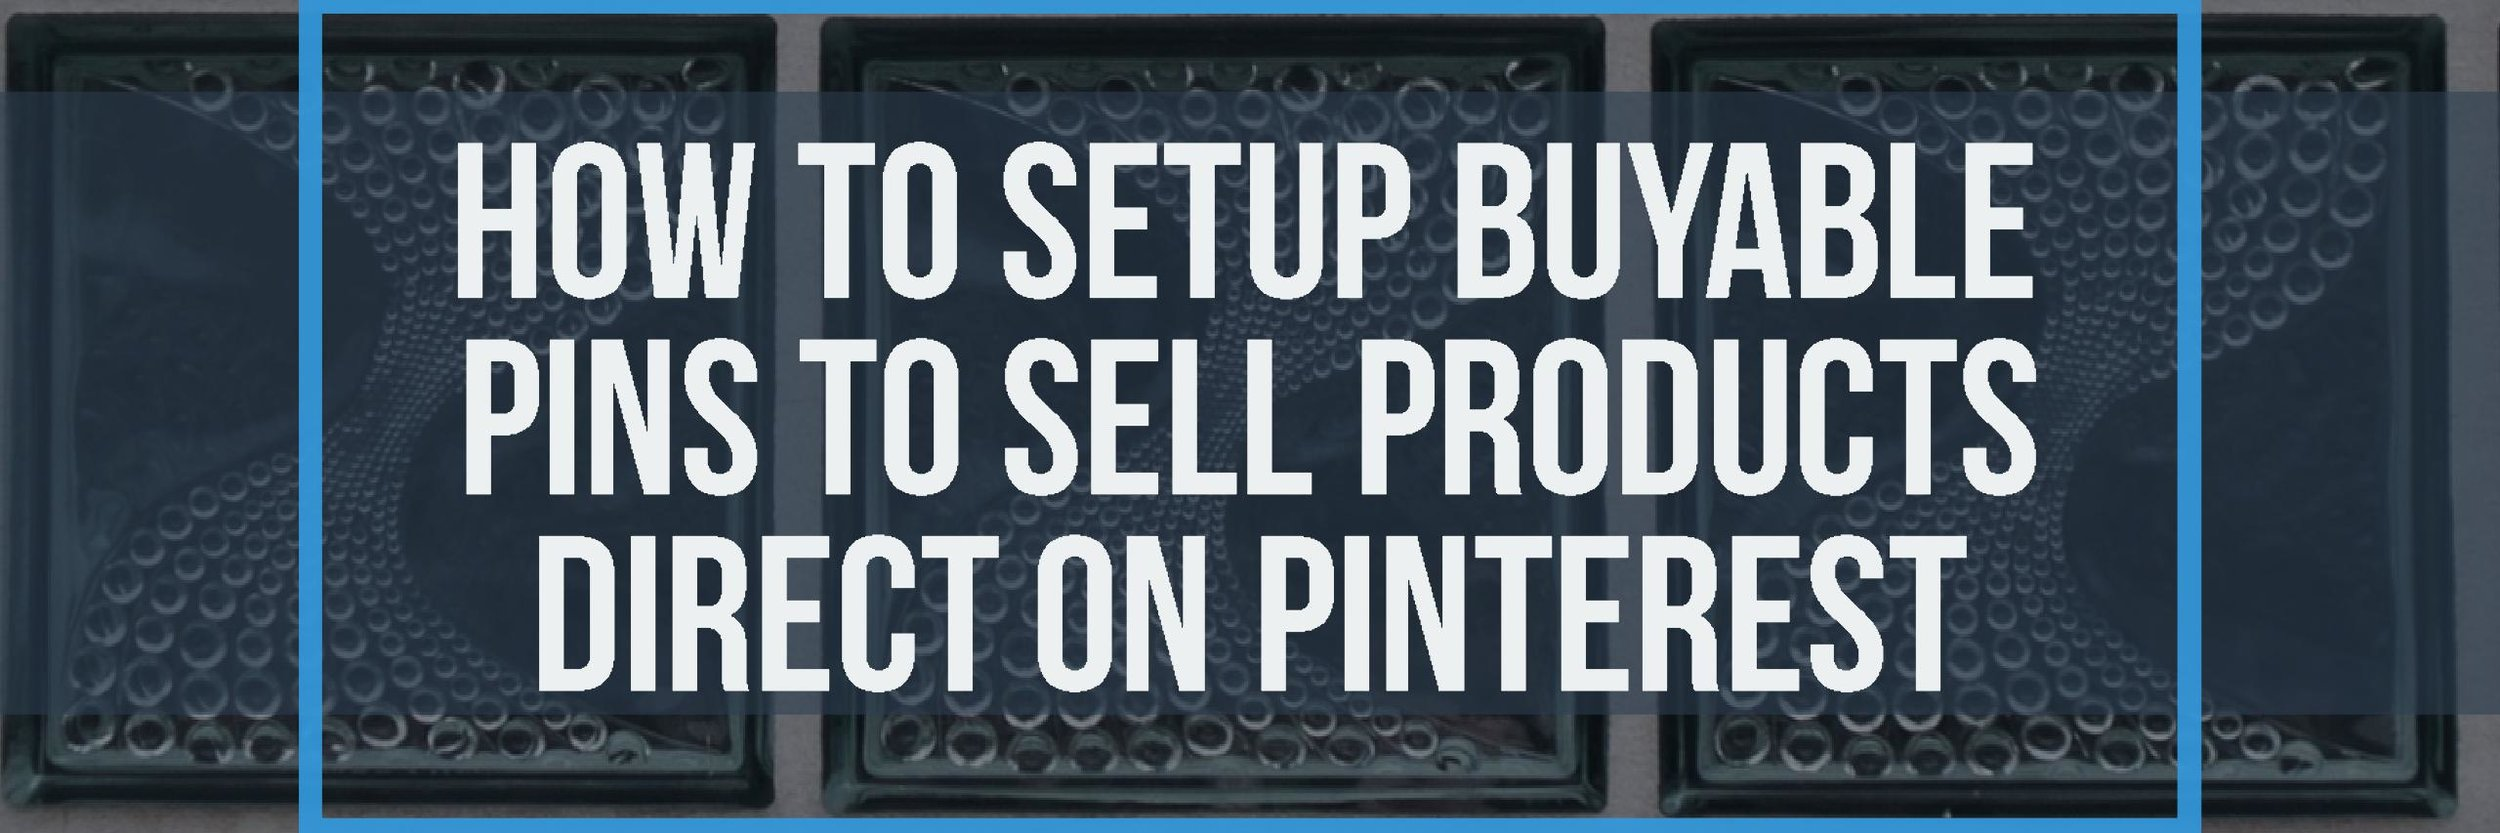 How to Setup Buyable Pins to Sell Products Direct on Pinterest